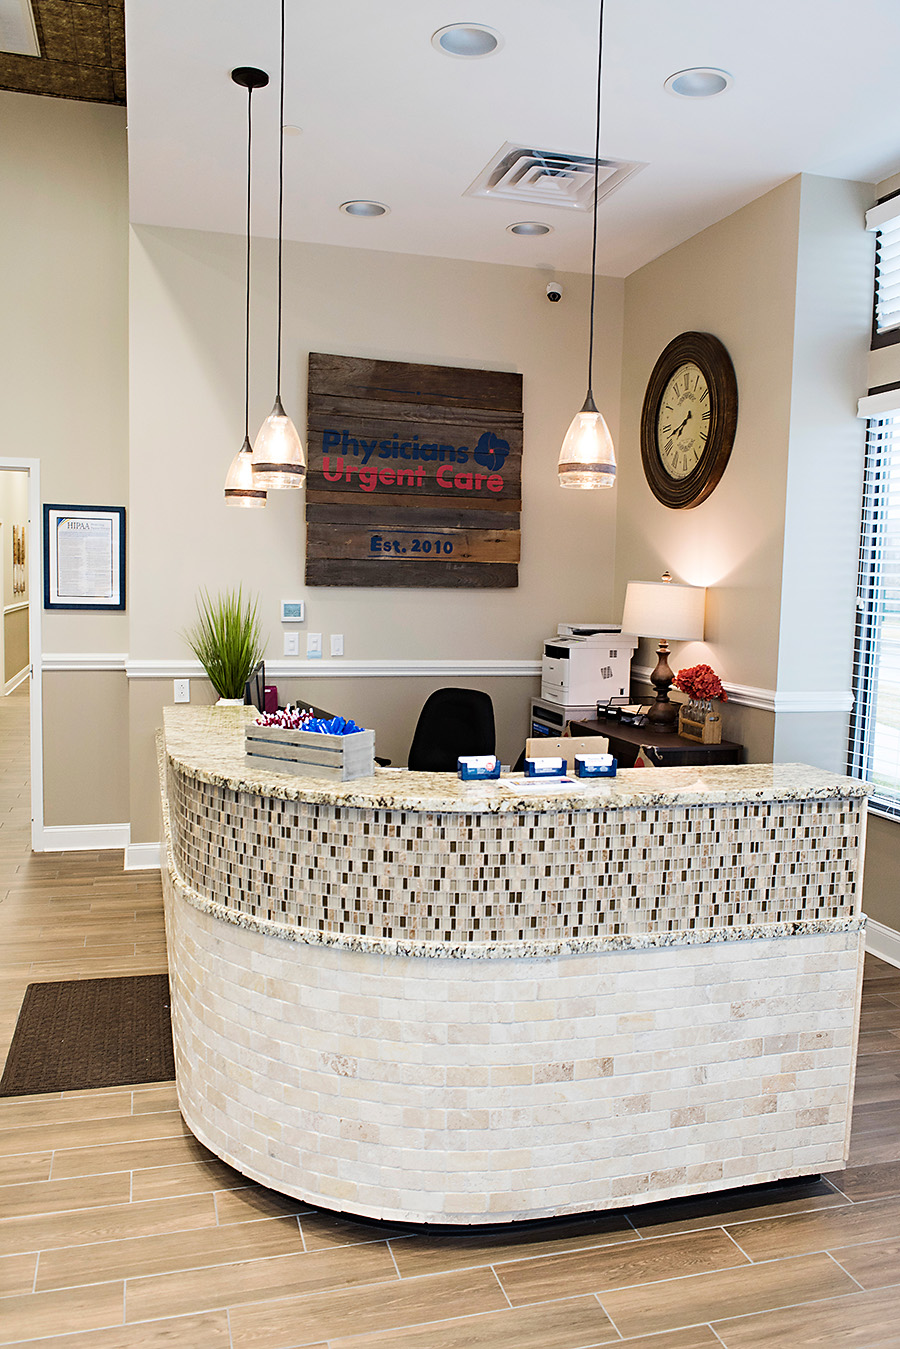 Berry Farms Walk In Urgent Care Clinic - Physicians Urgent